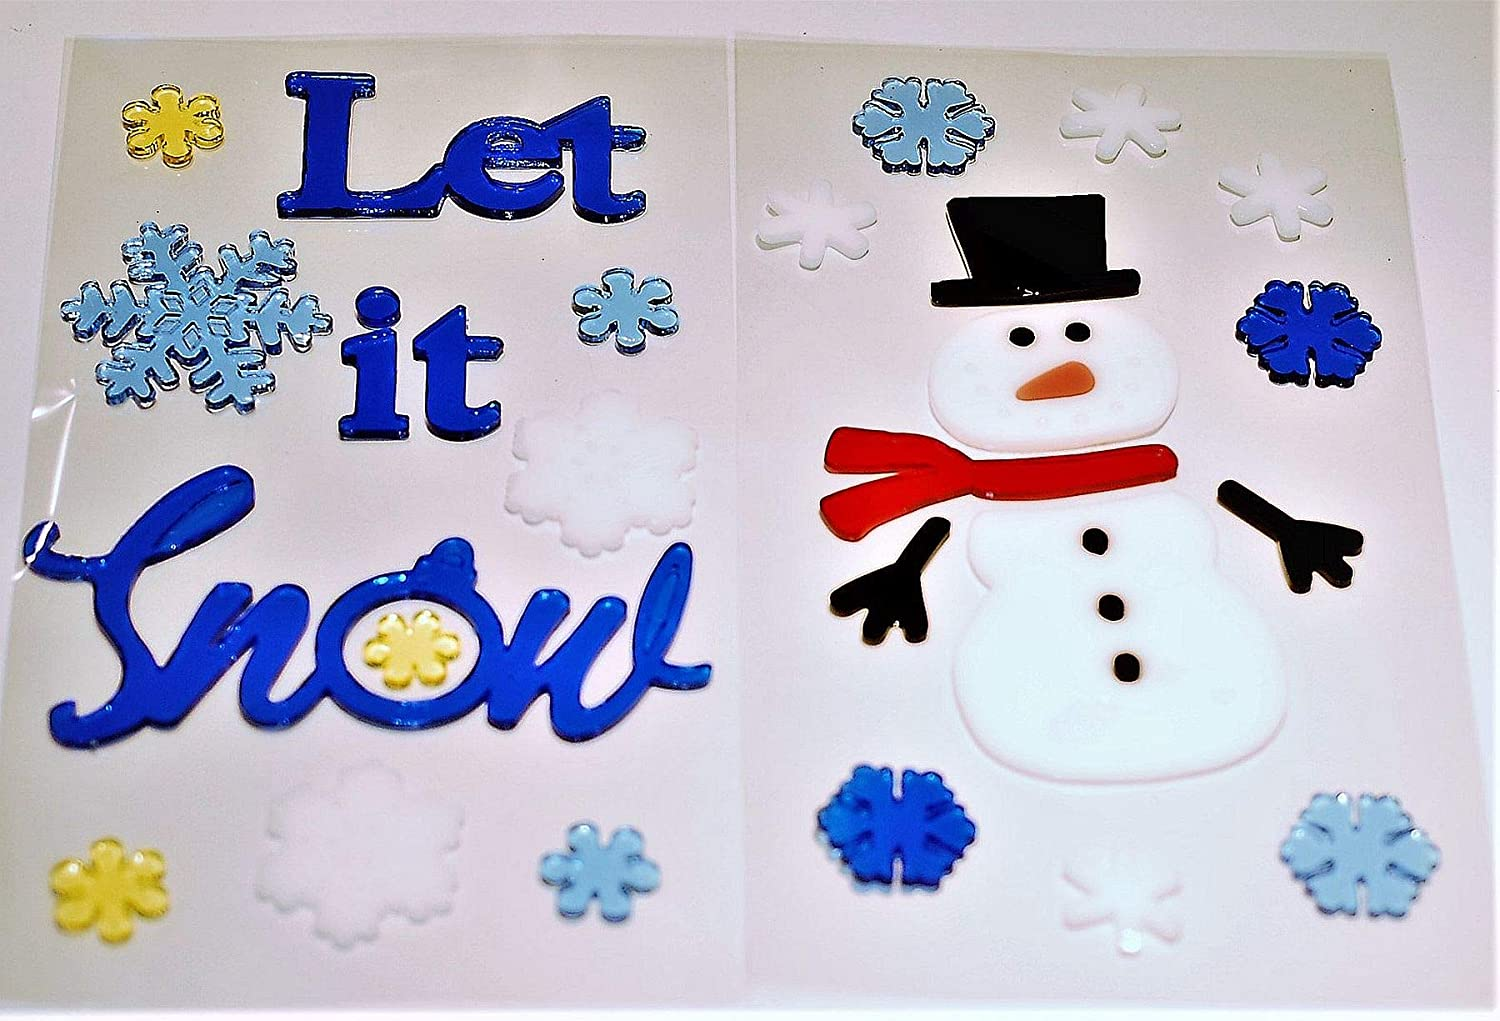 Makers Holiday Gel Christmas Window Clings Let It Snow, Snowflakes and Snowman.